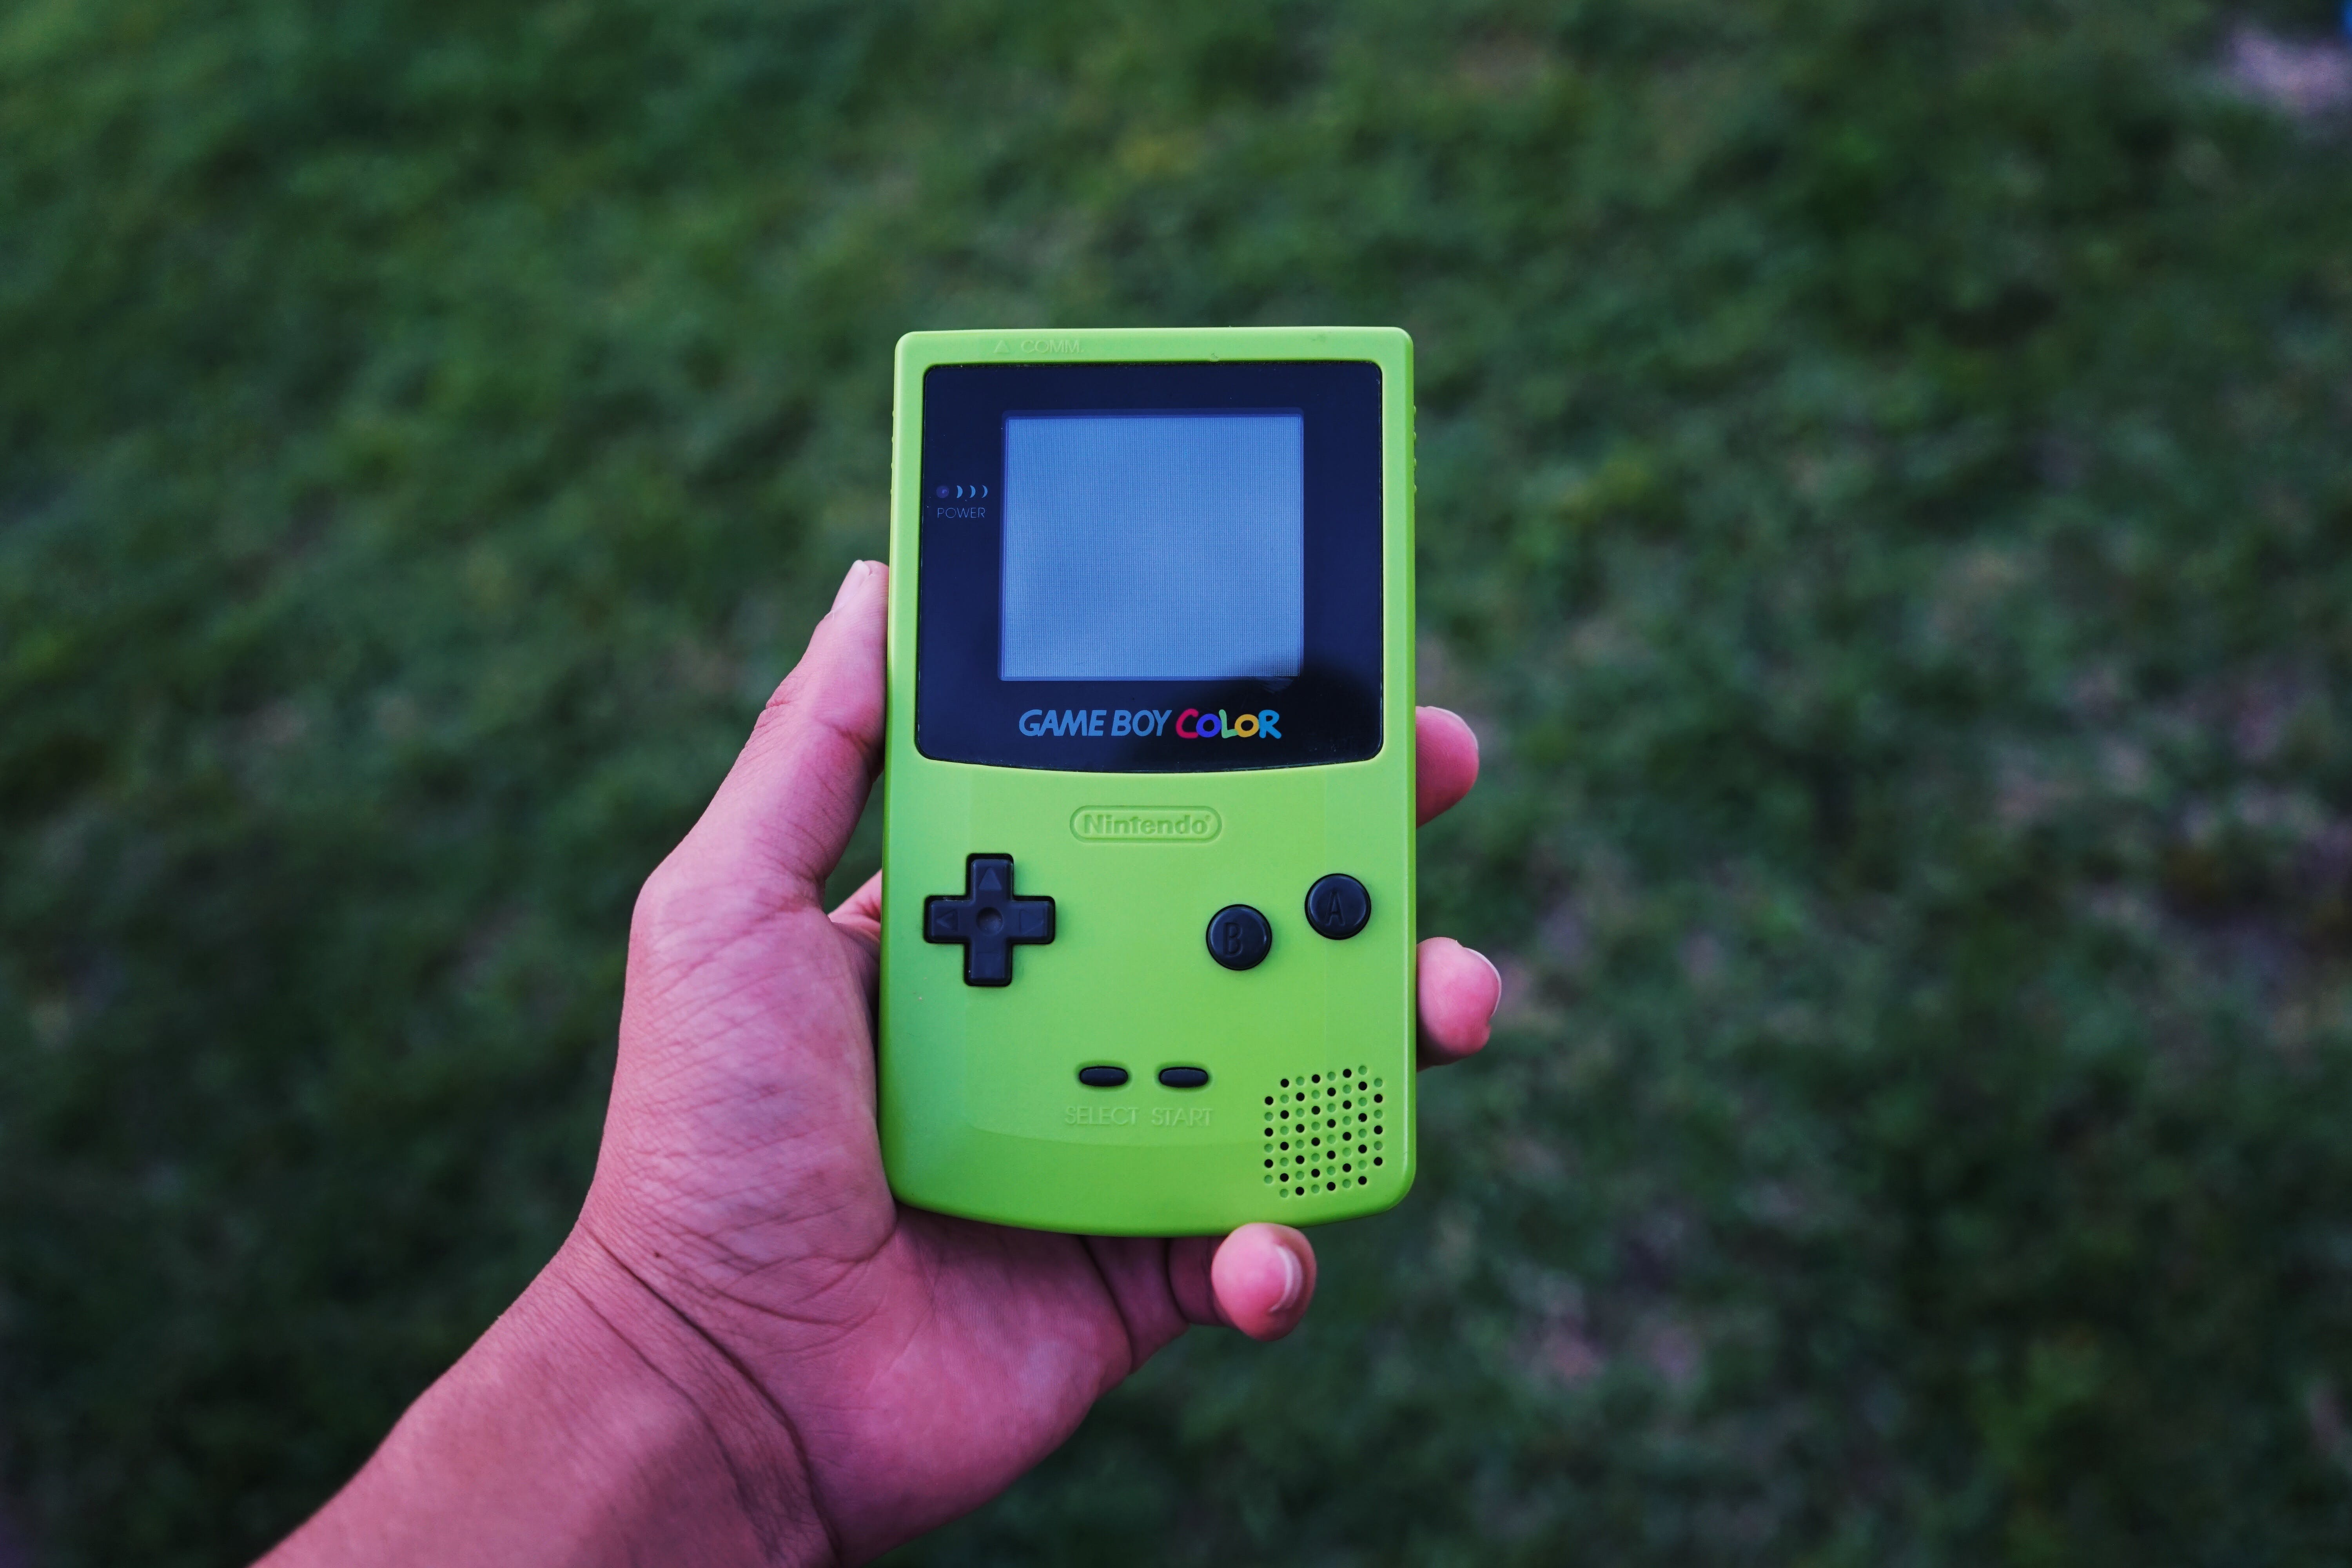 A person holding a green Game Boy Color in their hand